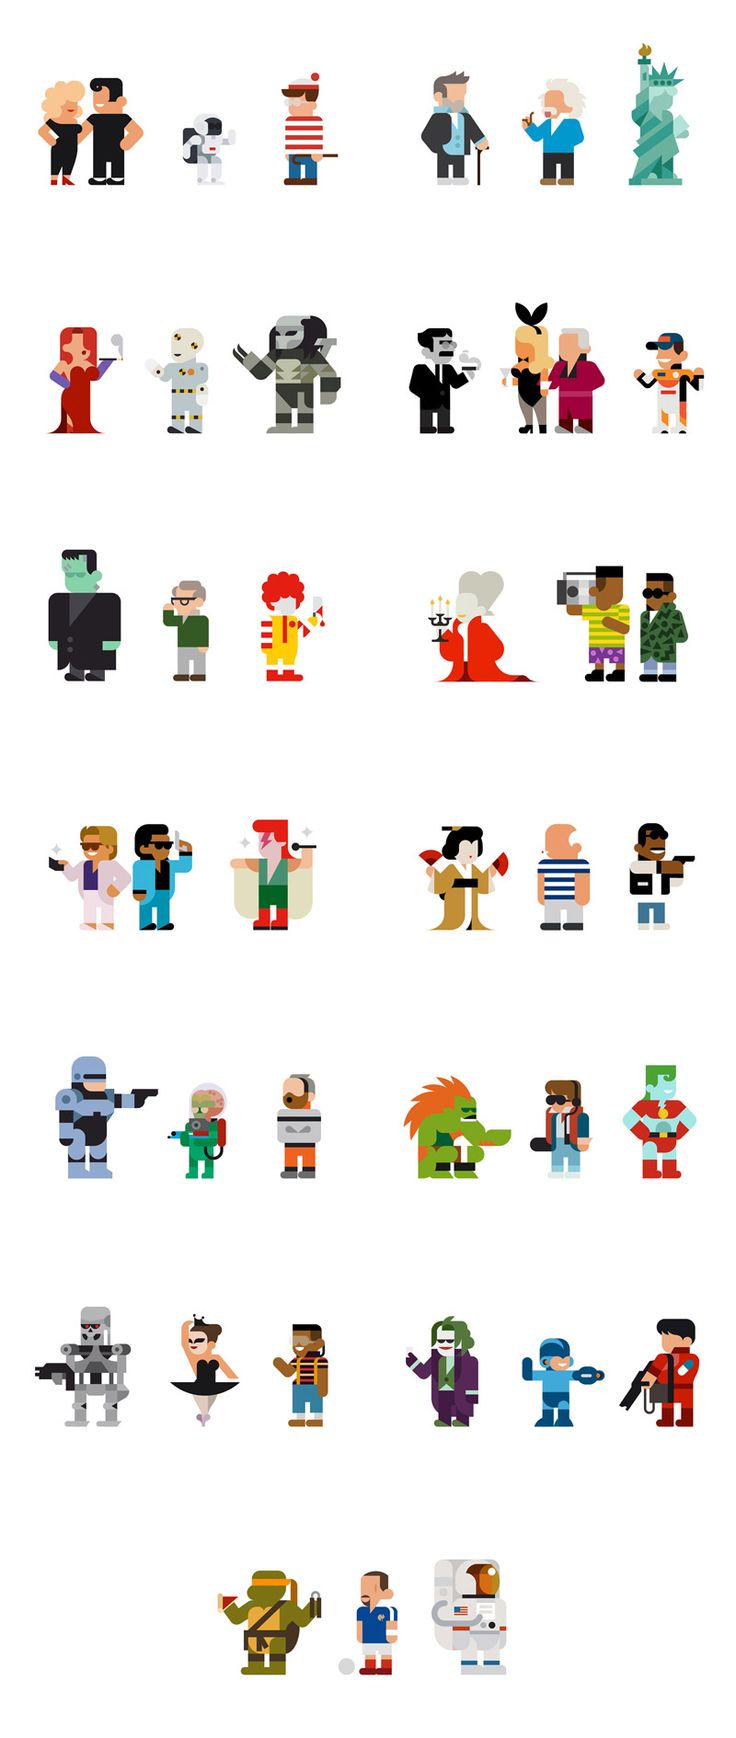 Every Hey - Personal daily illustration project by Barcelona based Hey studio. They create and post one icon per day of popular characters from pop culture, tv, and cinema.